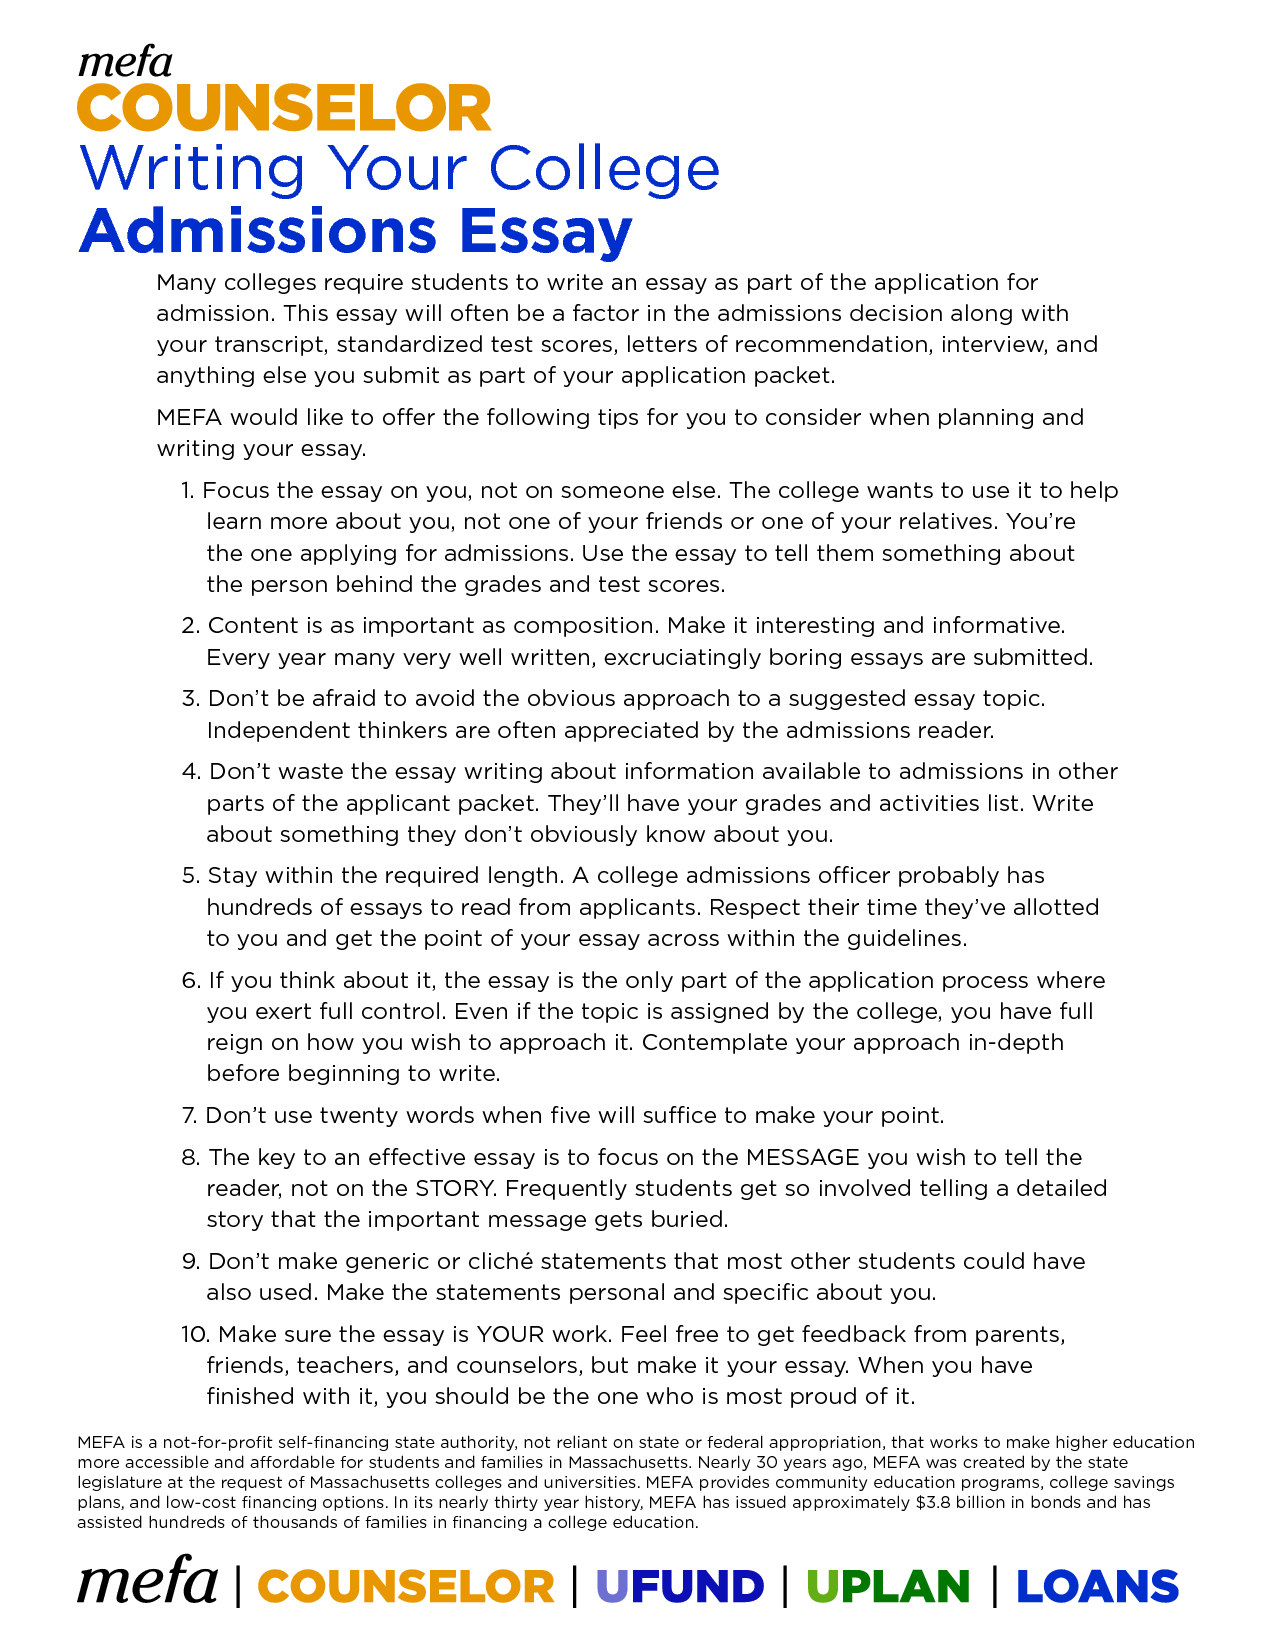 What Should I Write My College Application Essay About